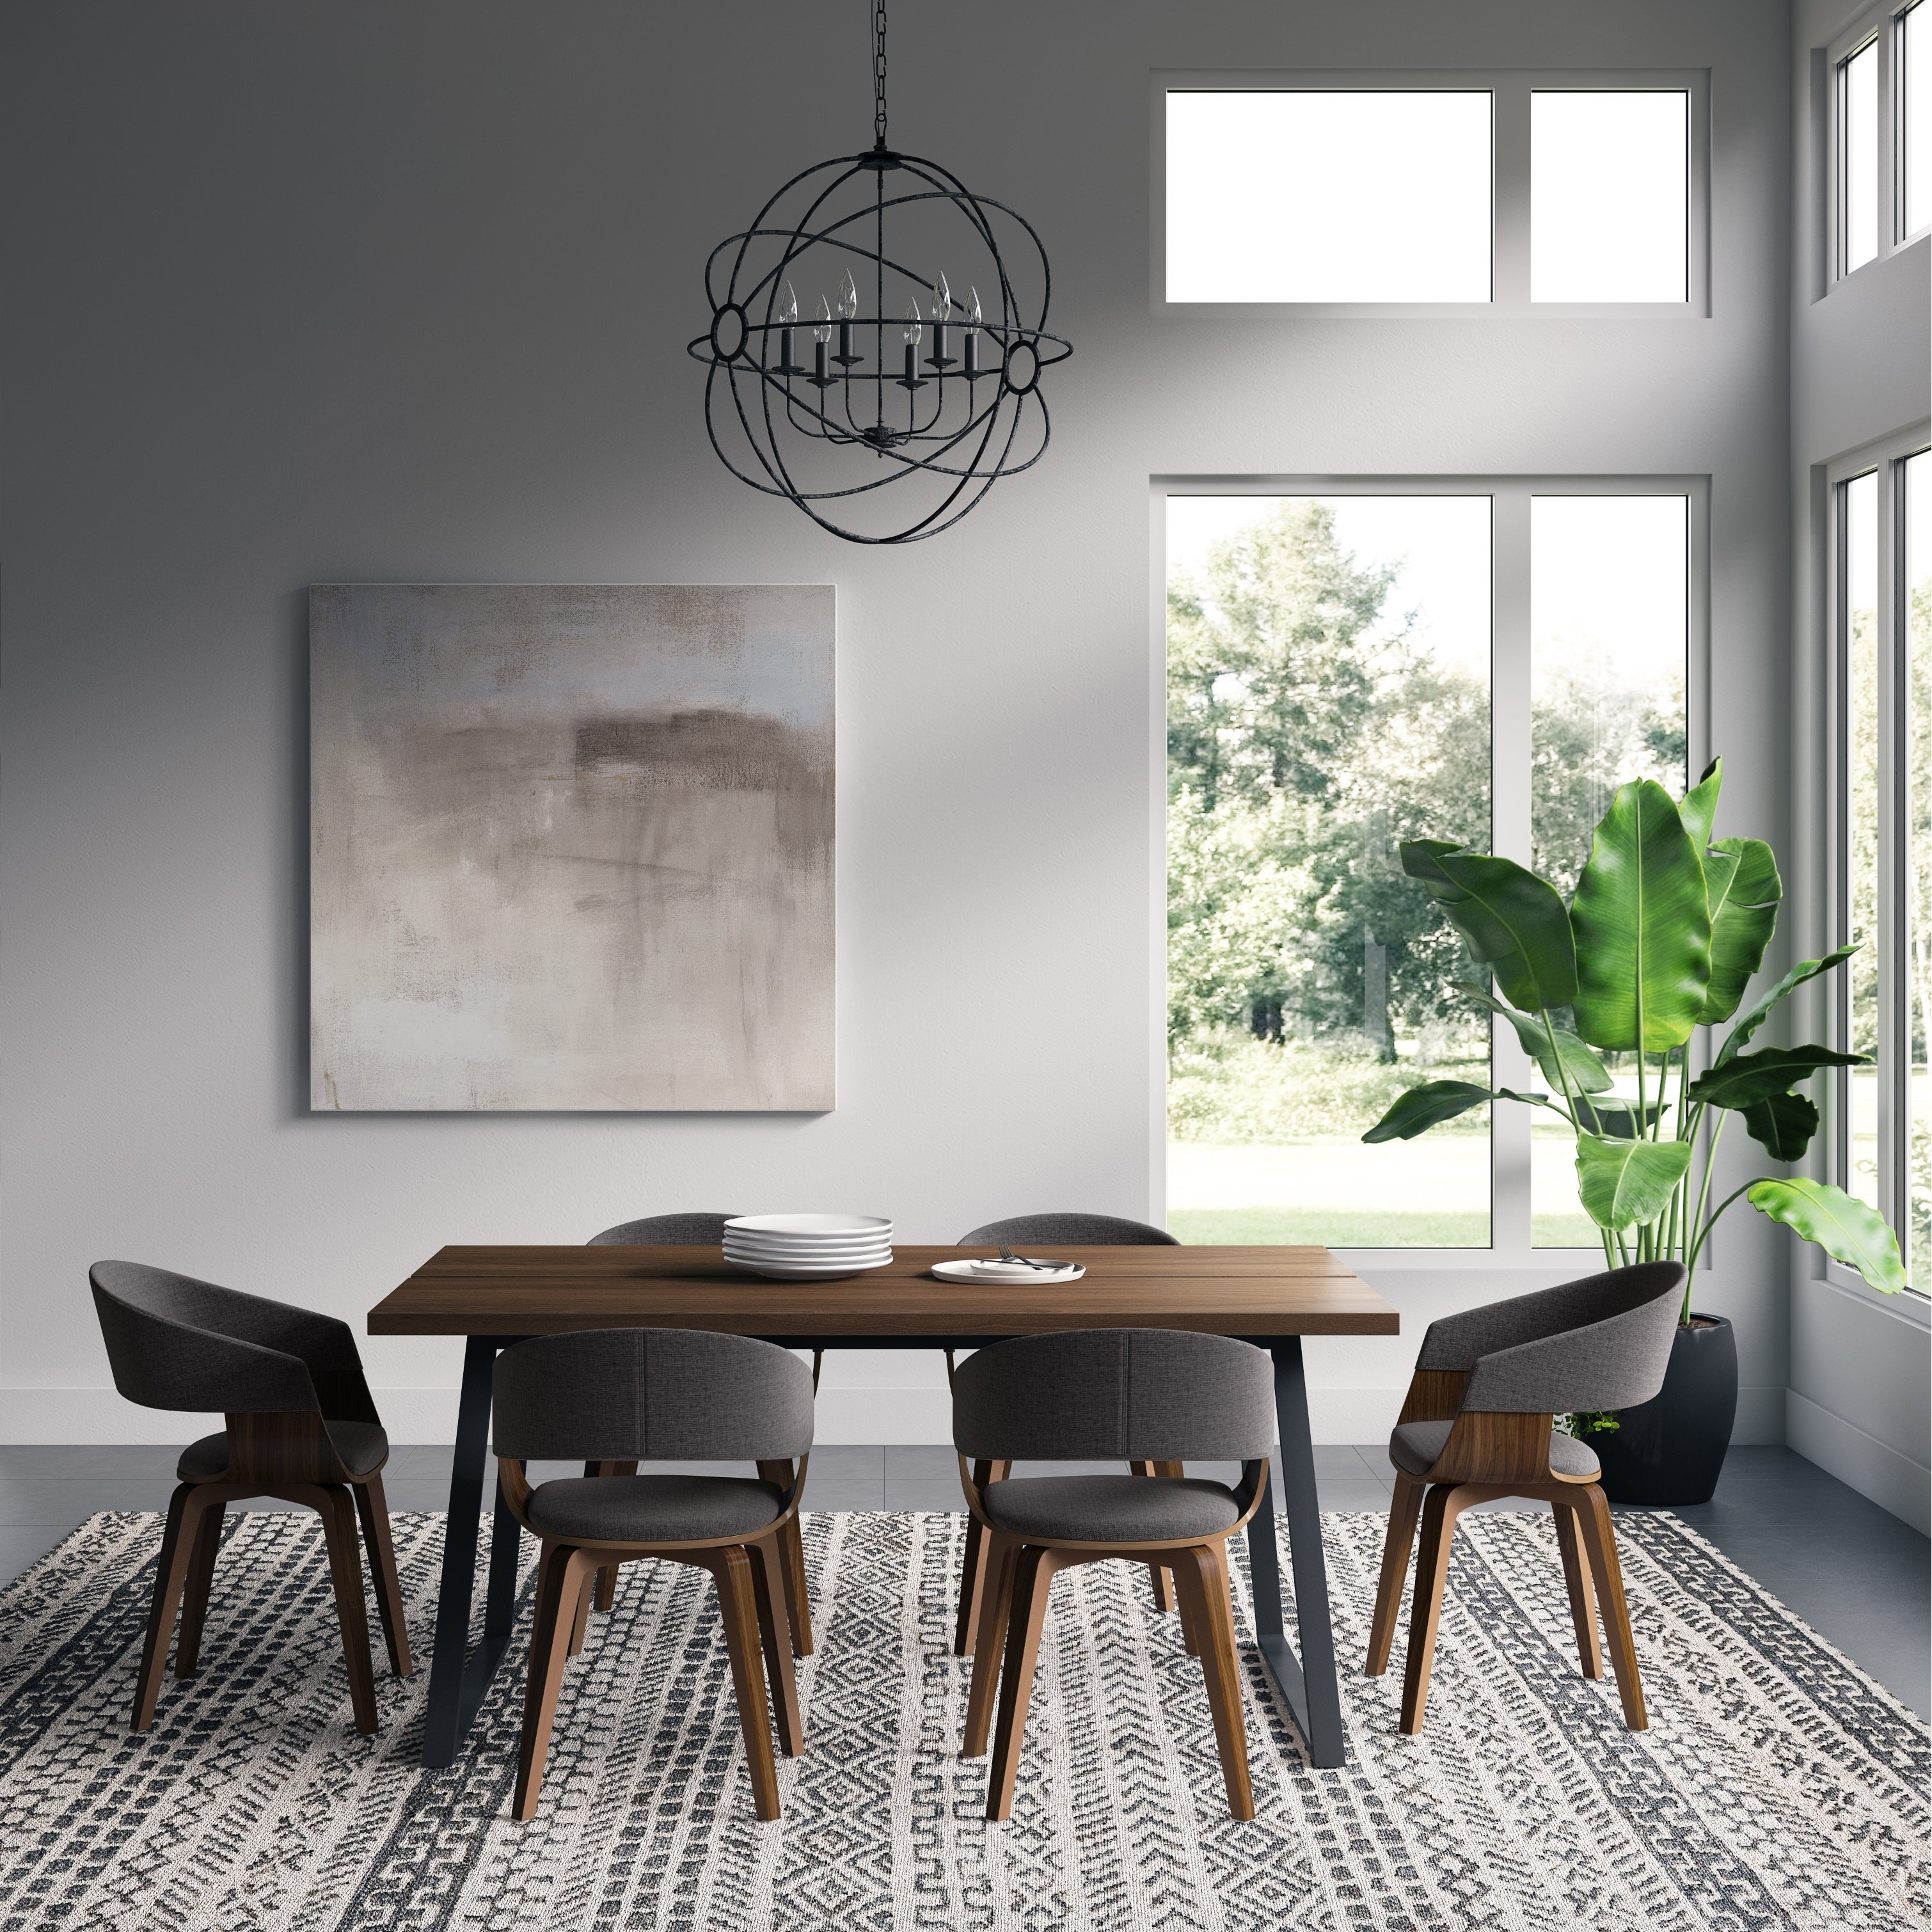 Wyndenhall Calinda Mid Century Modern Ii 7 Pc Dining Set With 6 Upholstered Bentwood Dining Chairs And 66 Inch Wide Table Overstock 28987703